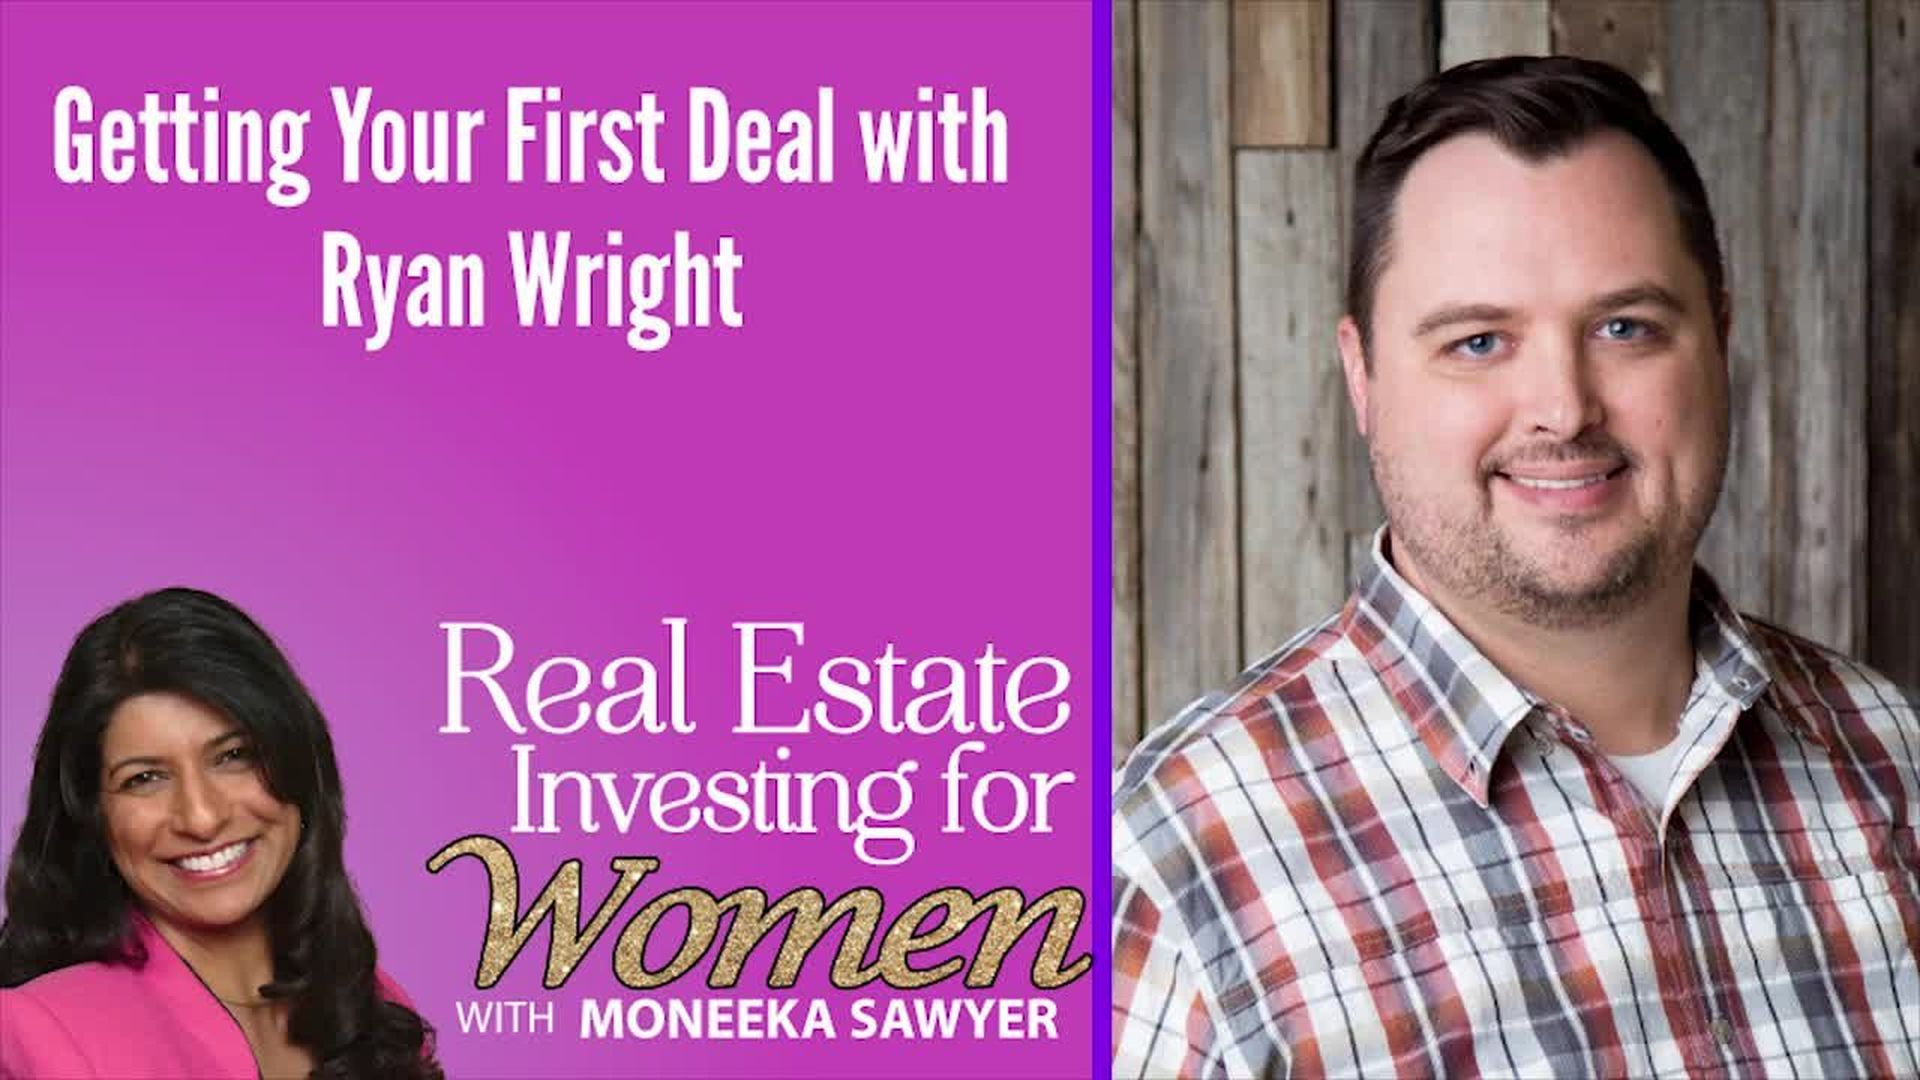 Getting Your First Deal with Ryan Wright - REAL ESTATE INVESTING FOR WOMEN EXTRA